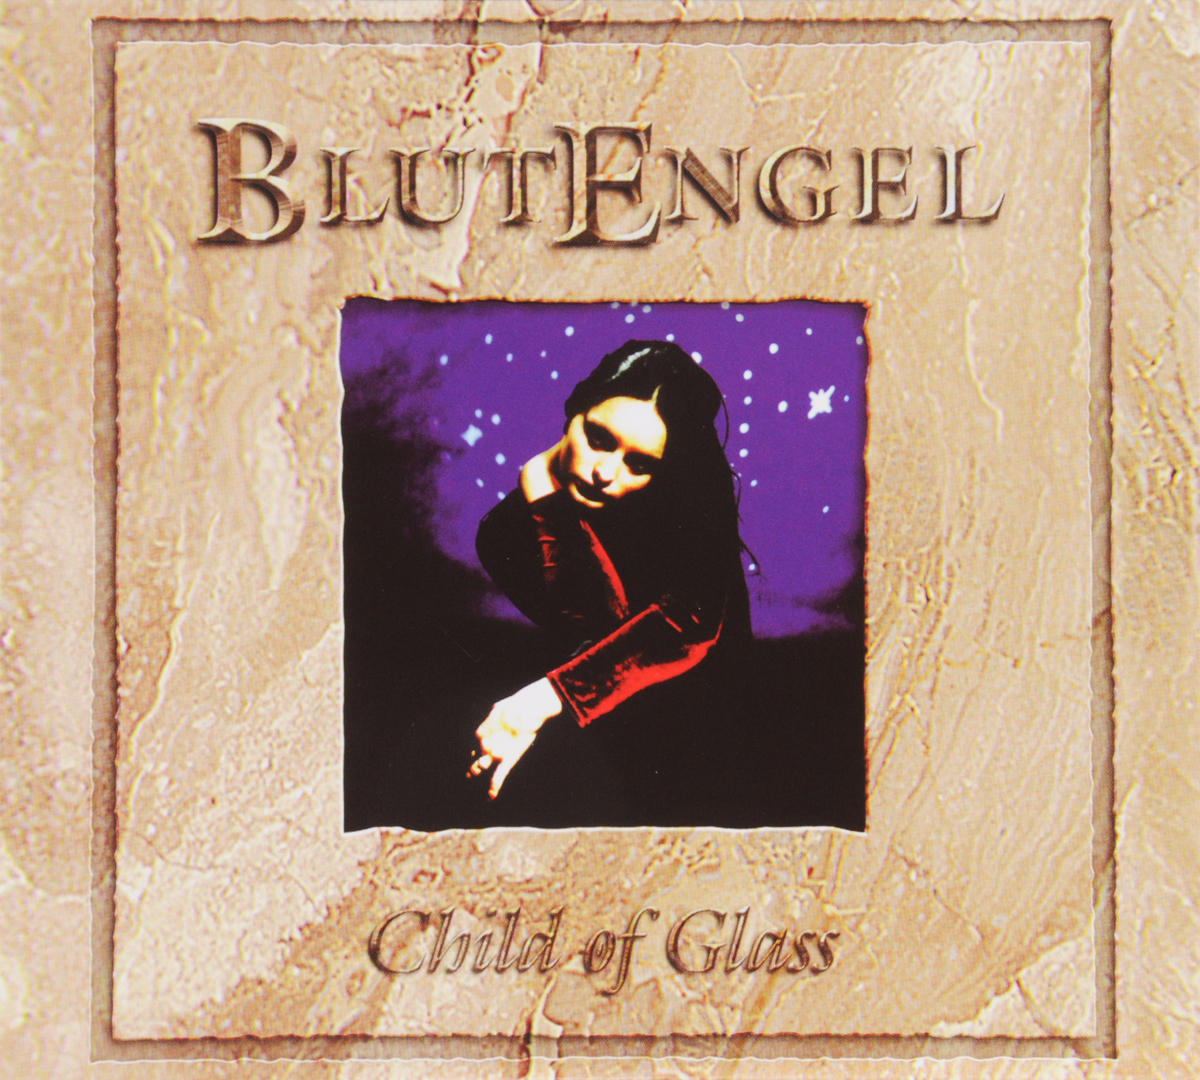 Blutengel. Child Of Glass